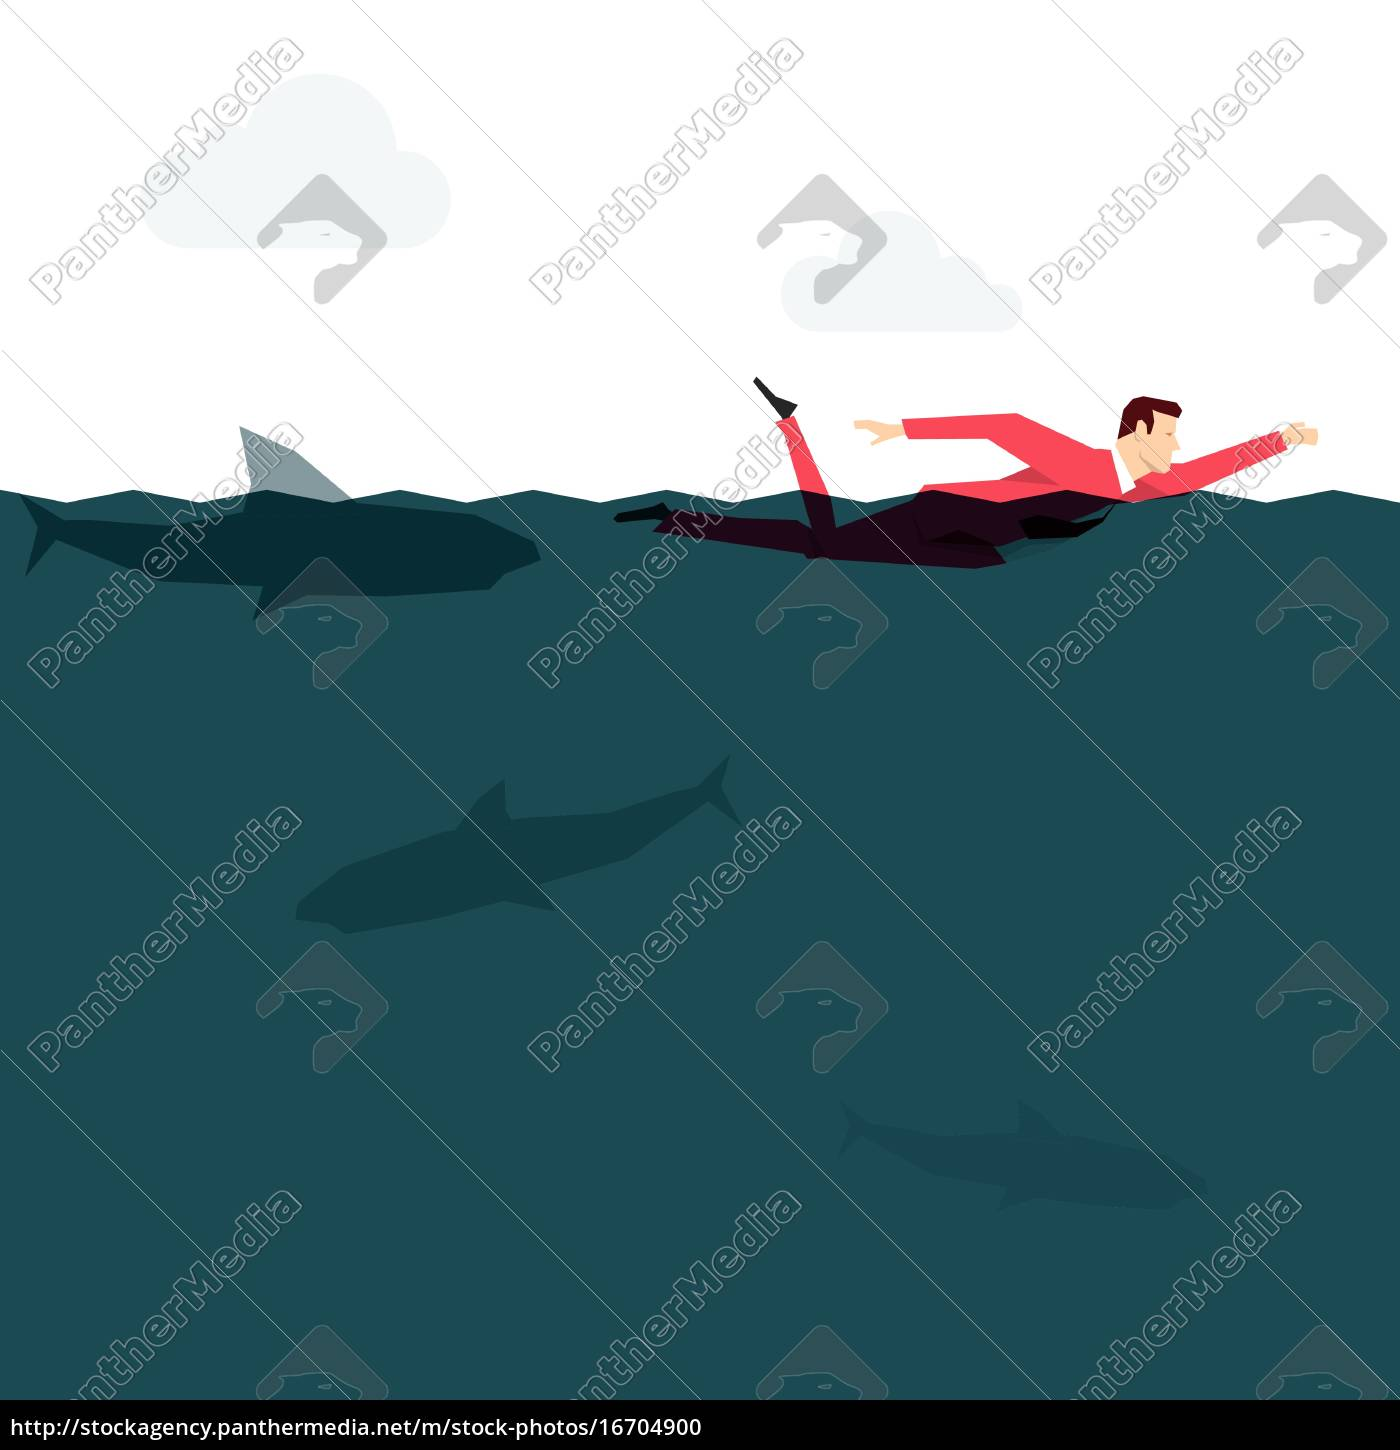 red, suit, businessman, in, the, ocean. - 16704900